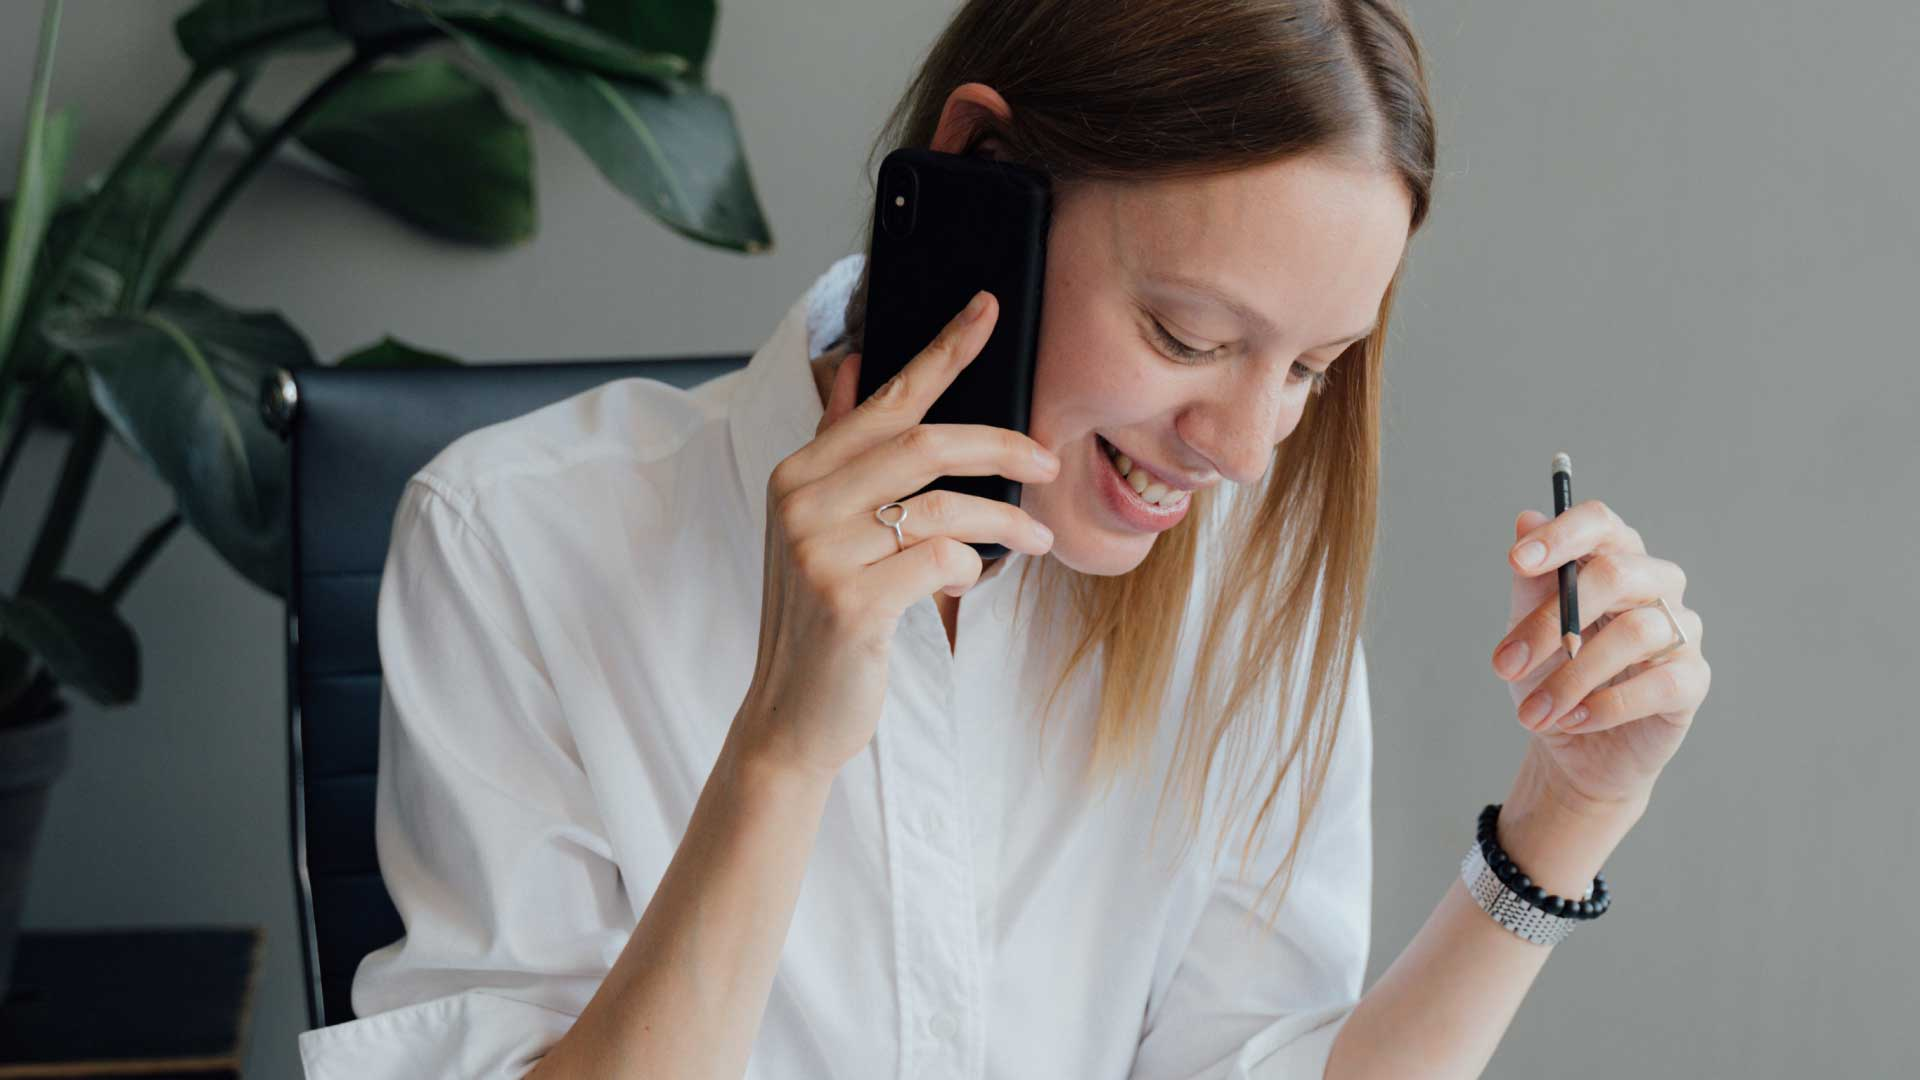 An image of a Pettable phone consultation